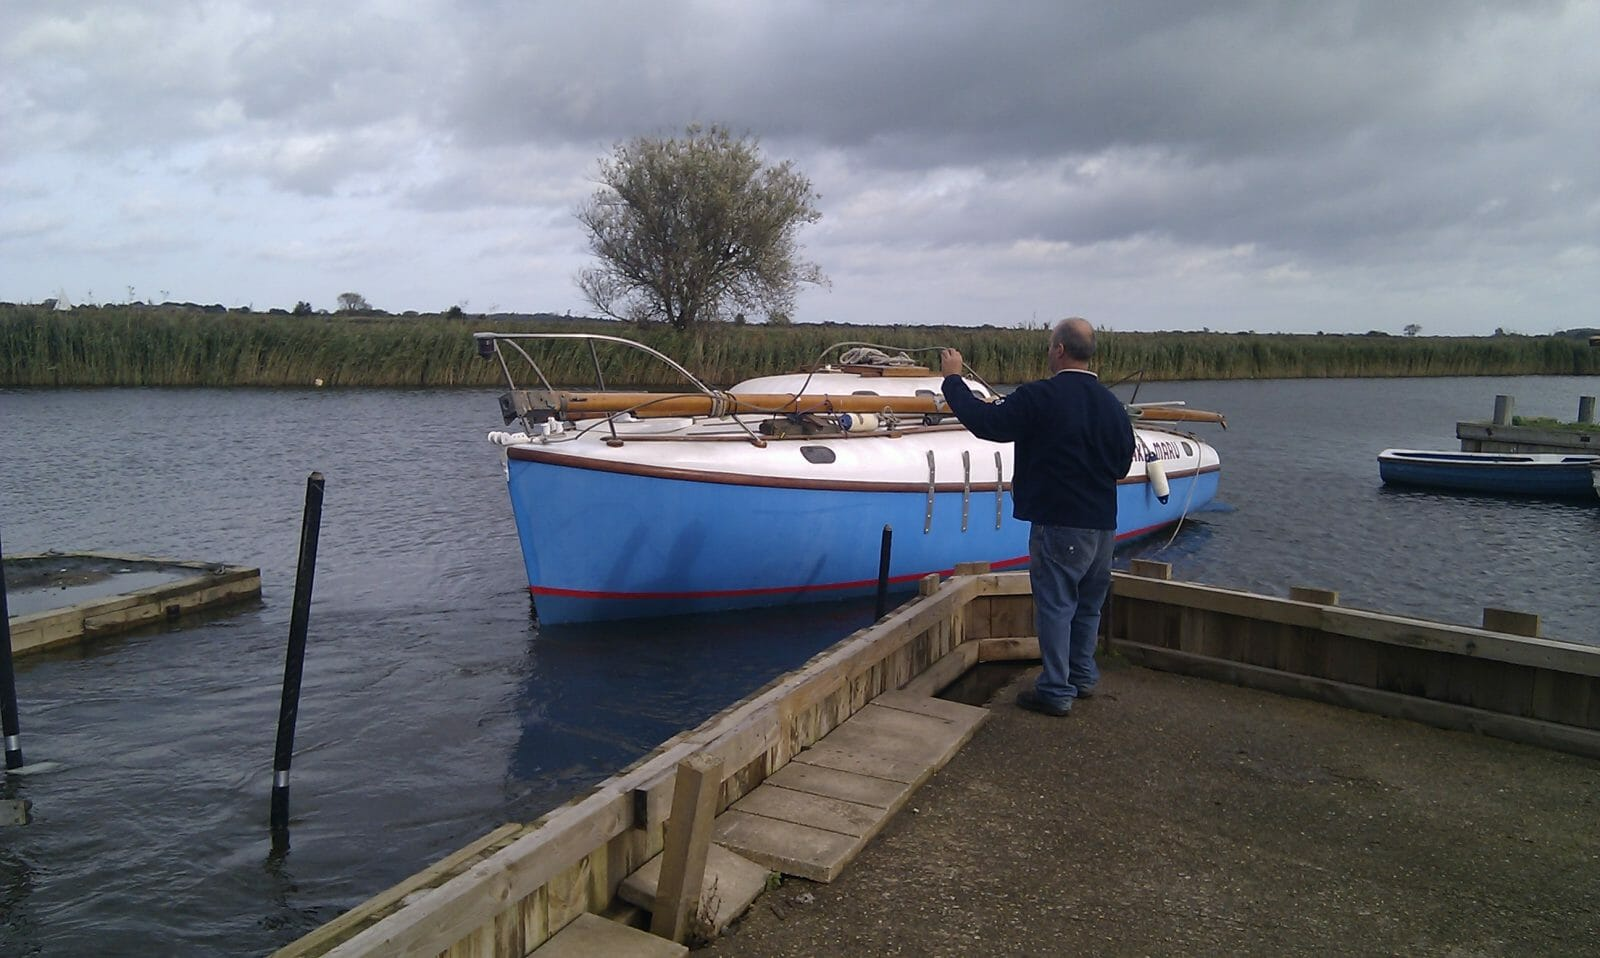 Finally... launched on the River Bure at Martham